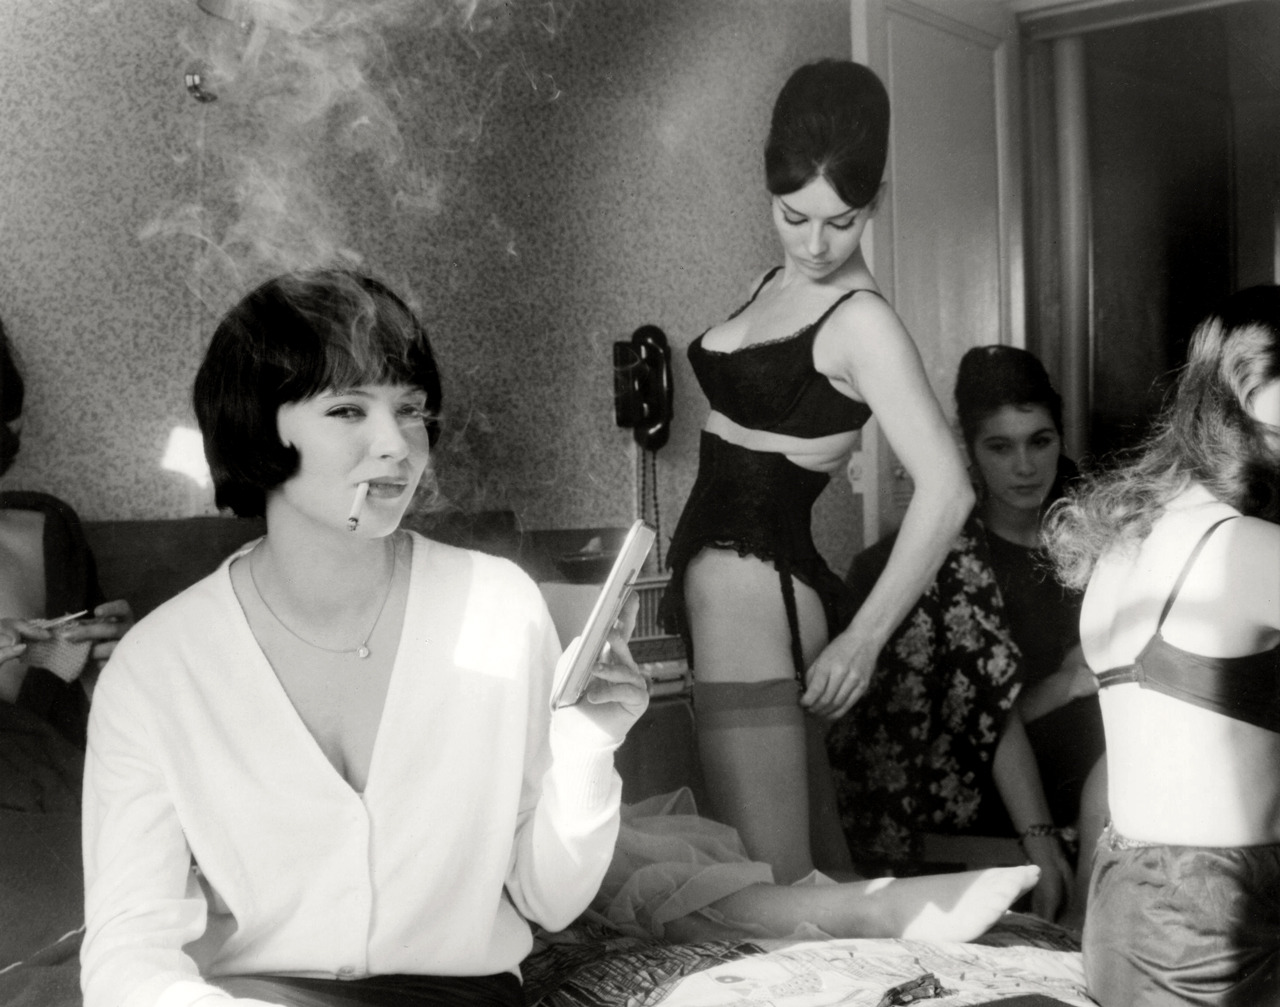 50 years ago today Jean-Luc-Godard's Vivre sa vie premiered in France.